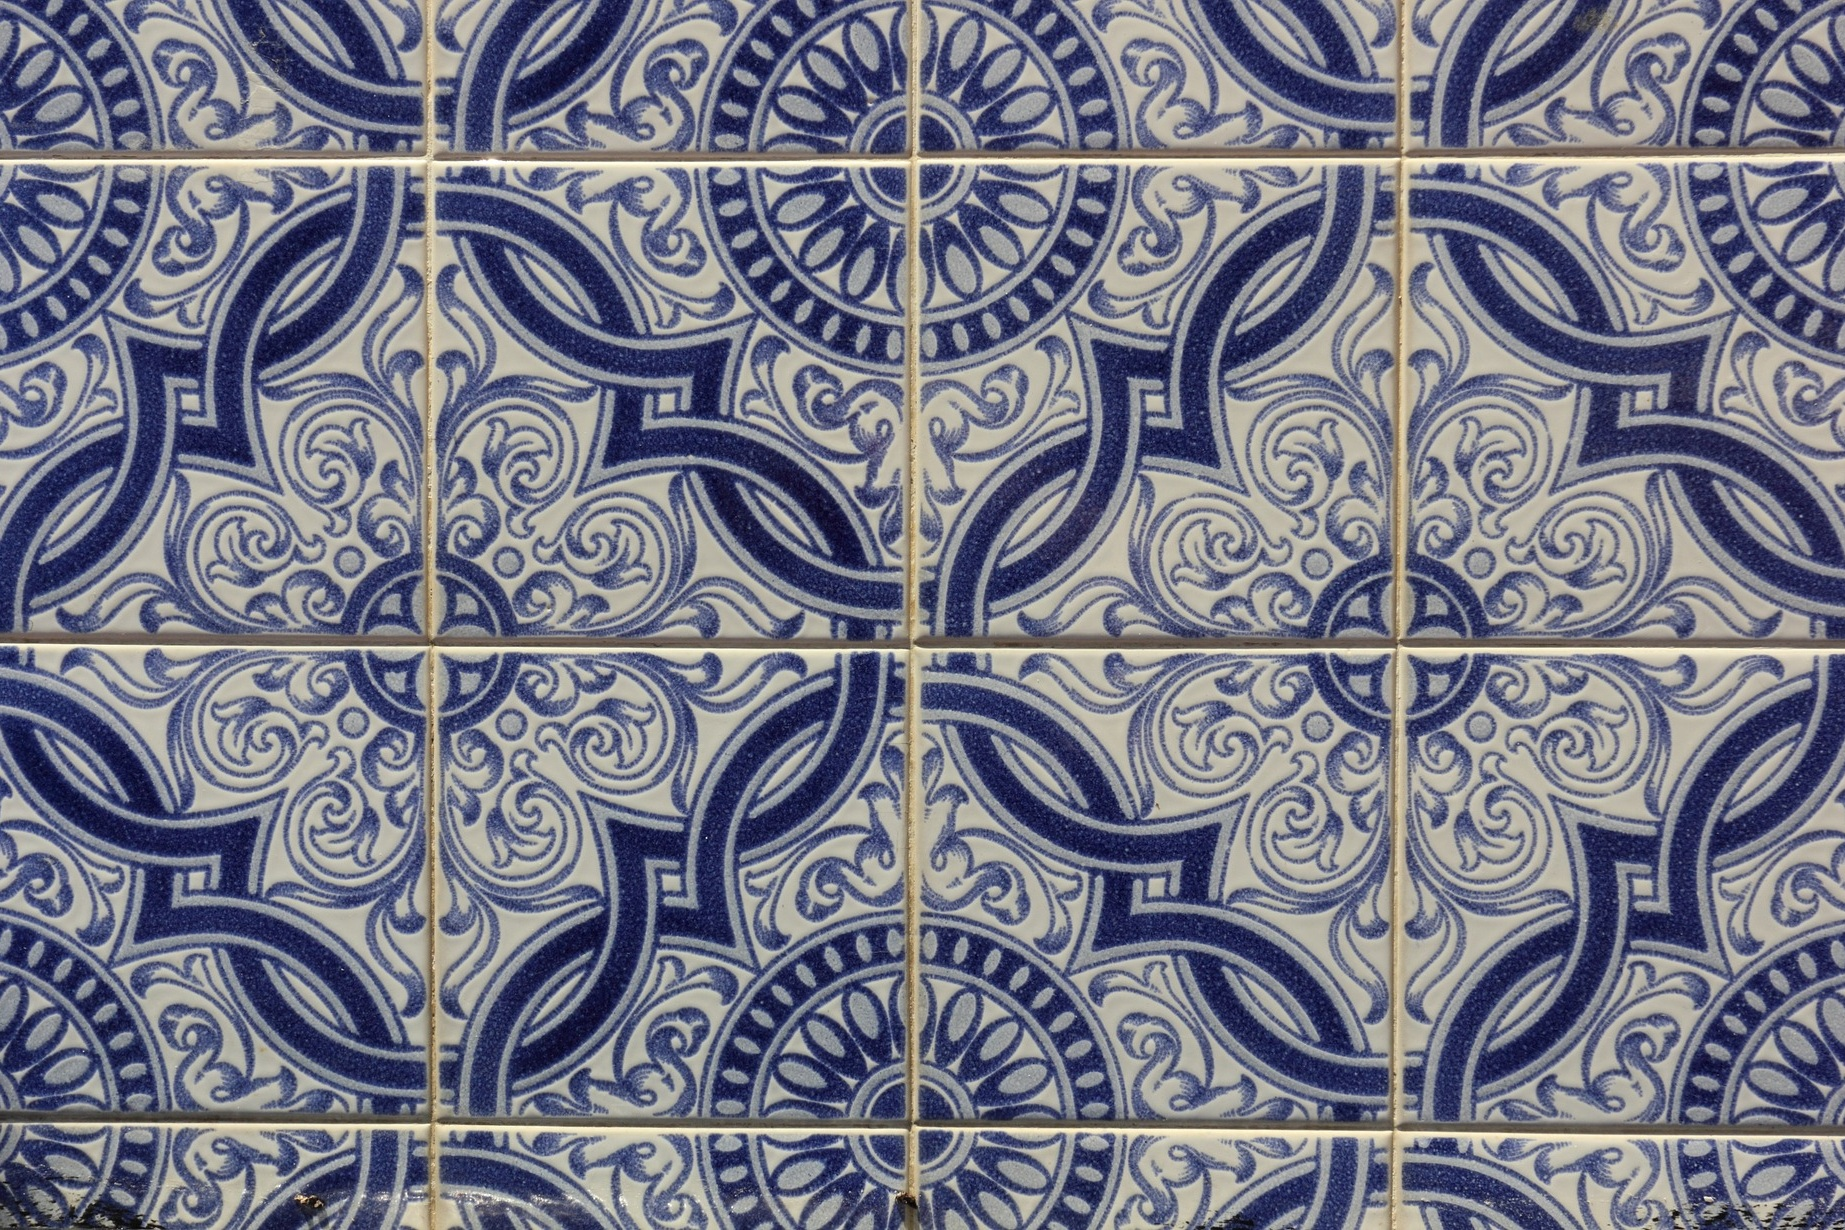 tiles and tales: azulejos workshop and shared tour - A day learning all about Azulejos, the famous Portuguese tiles that adorn the country